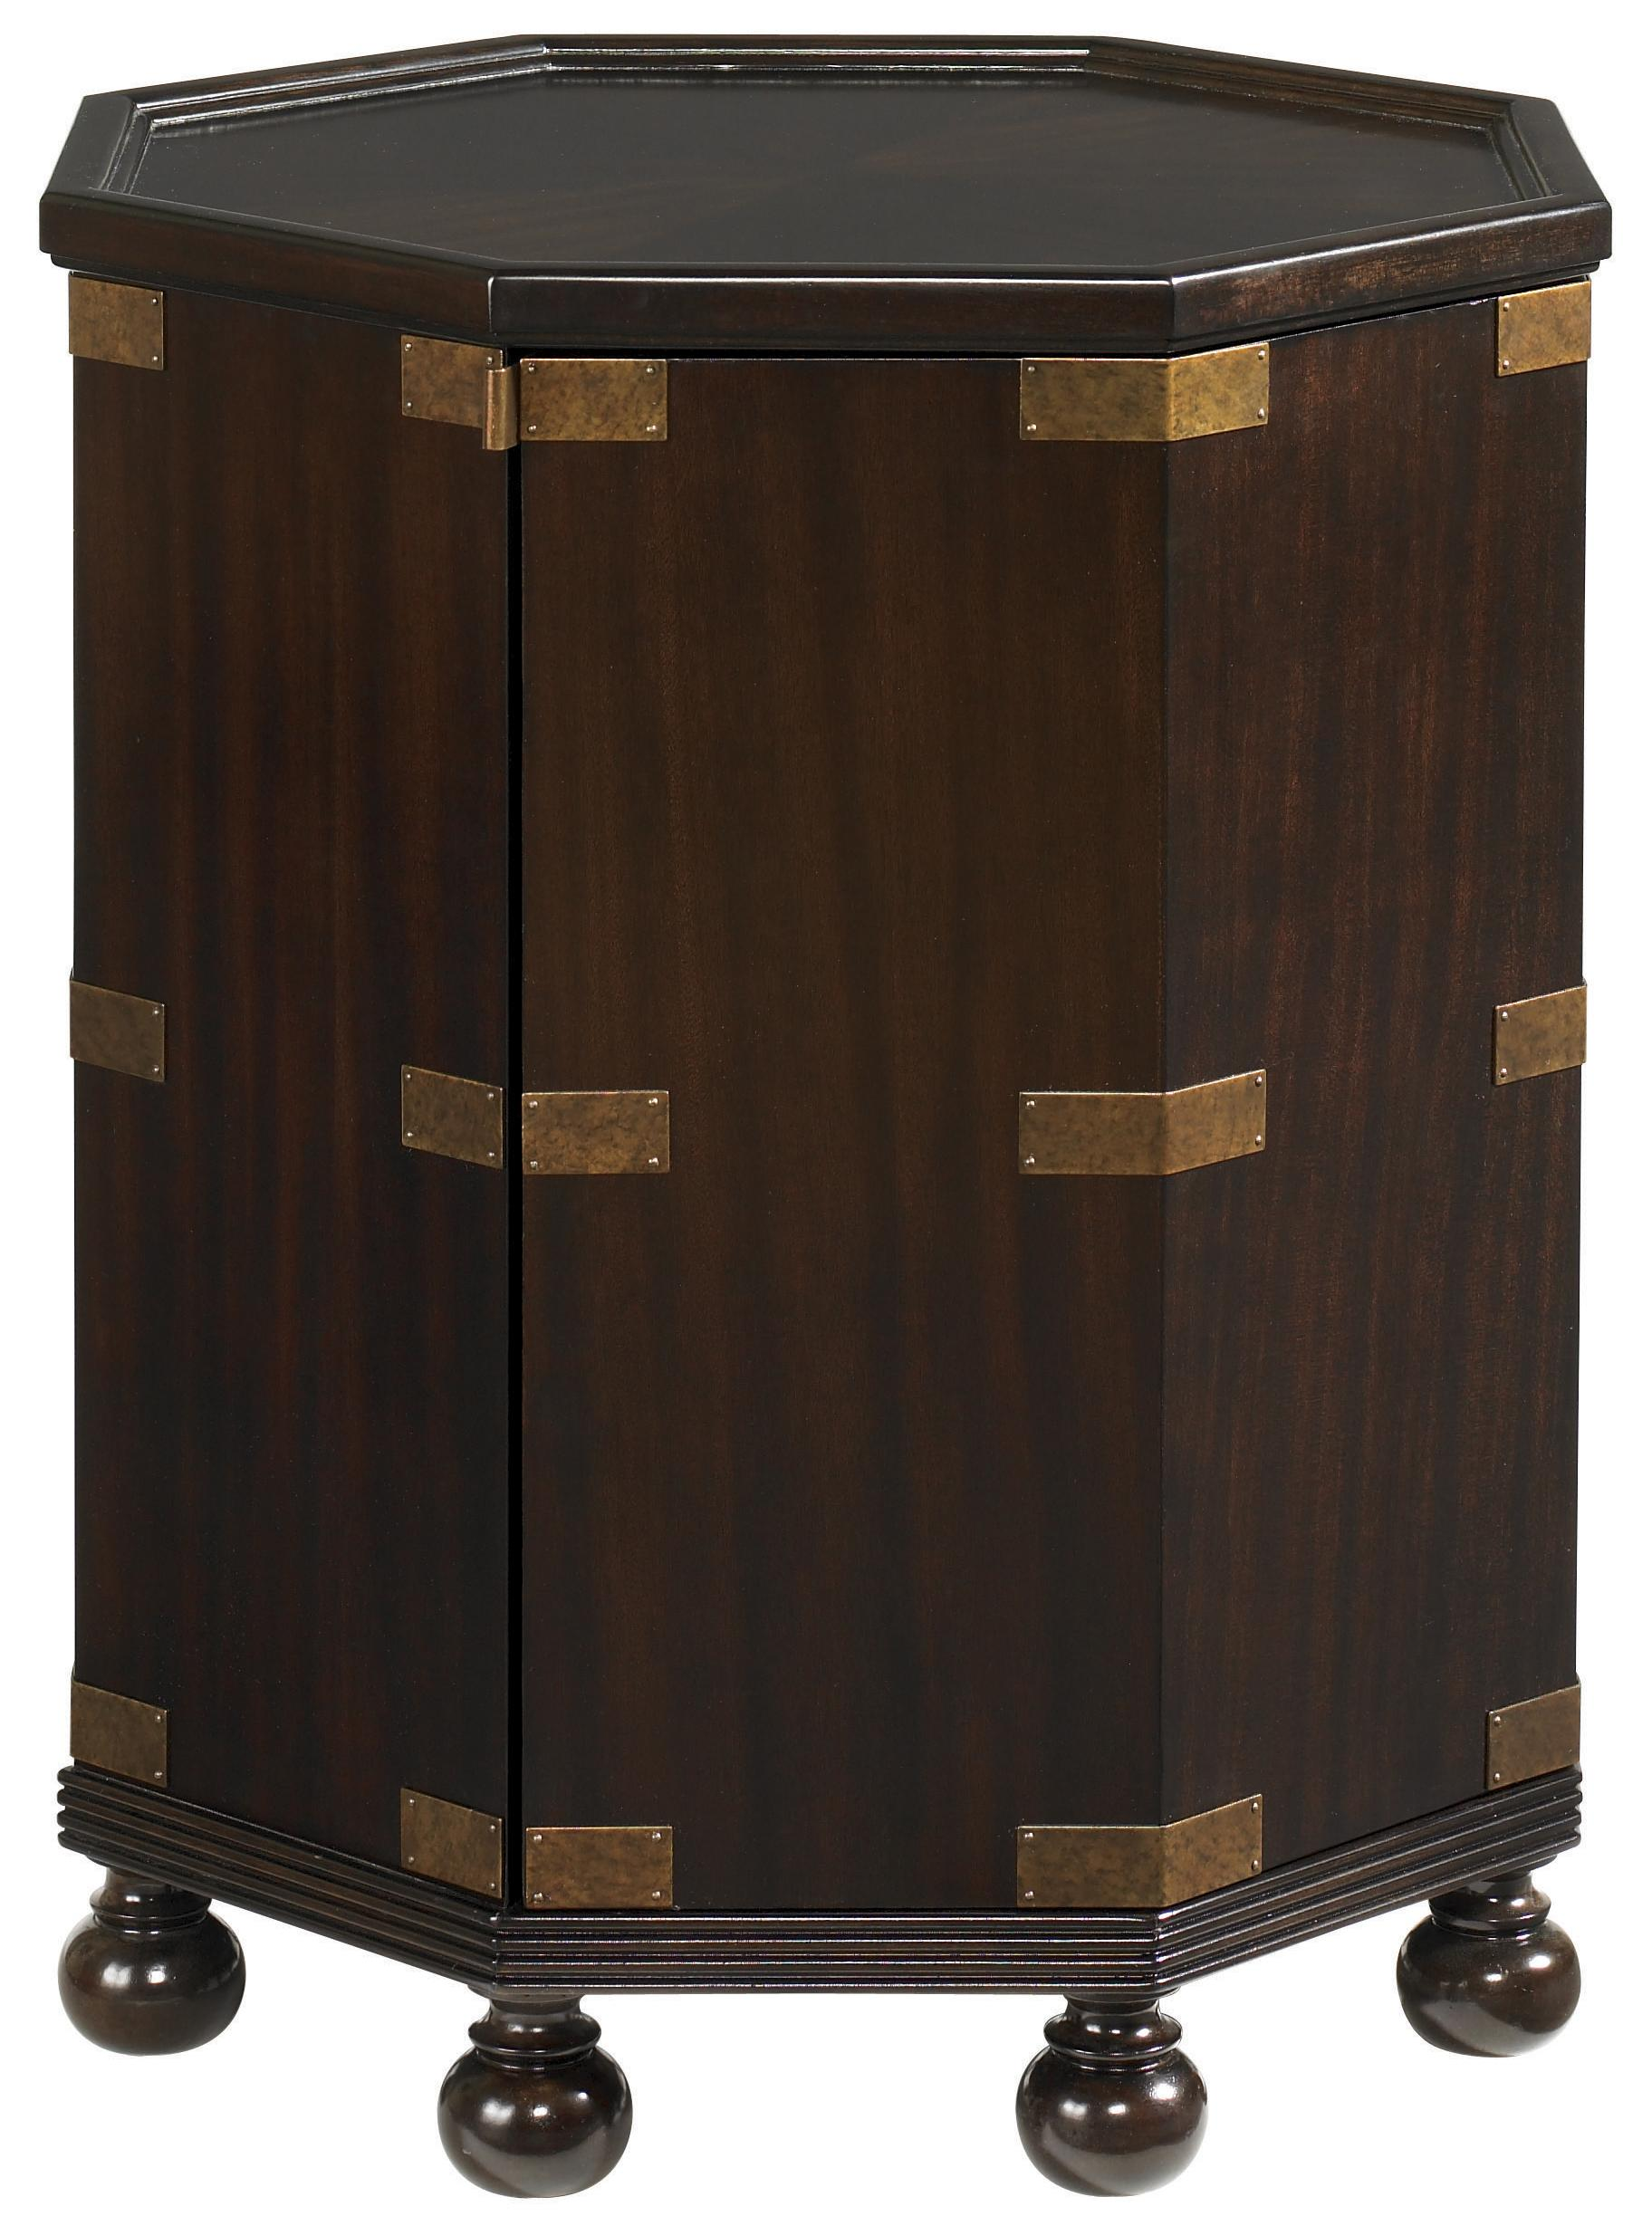 Royal Kahala Pacific Campaign Accent Table by Tommy Bahama Home at Baer's Furniture